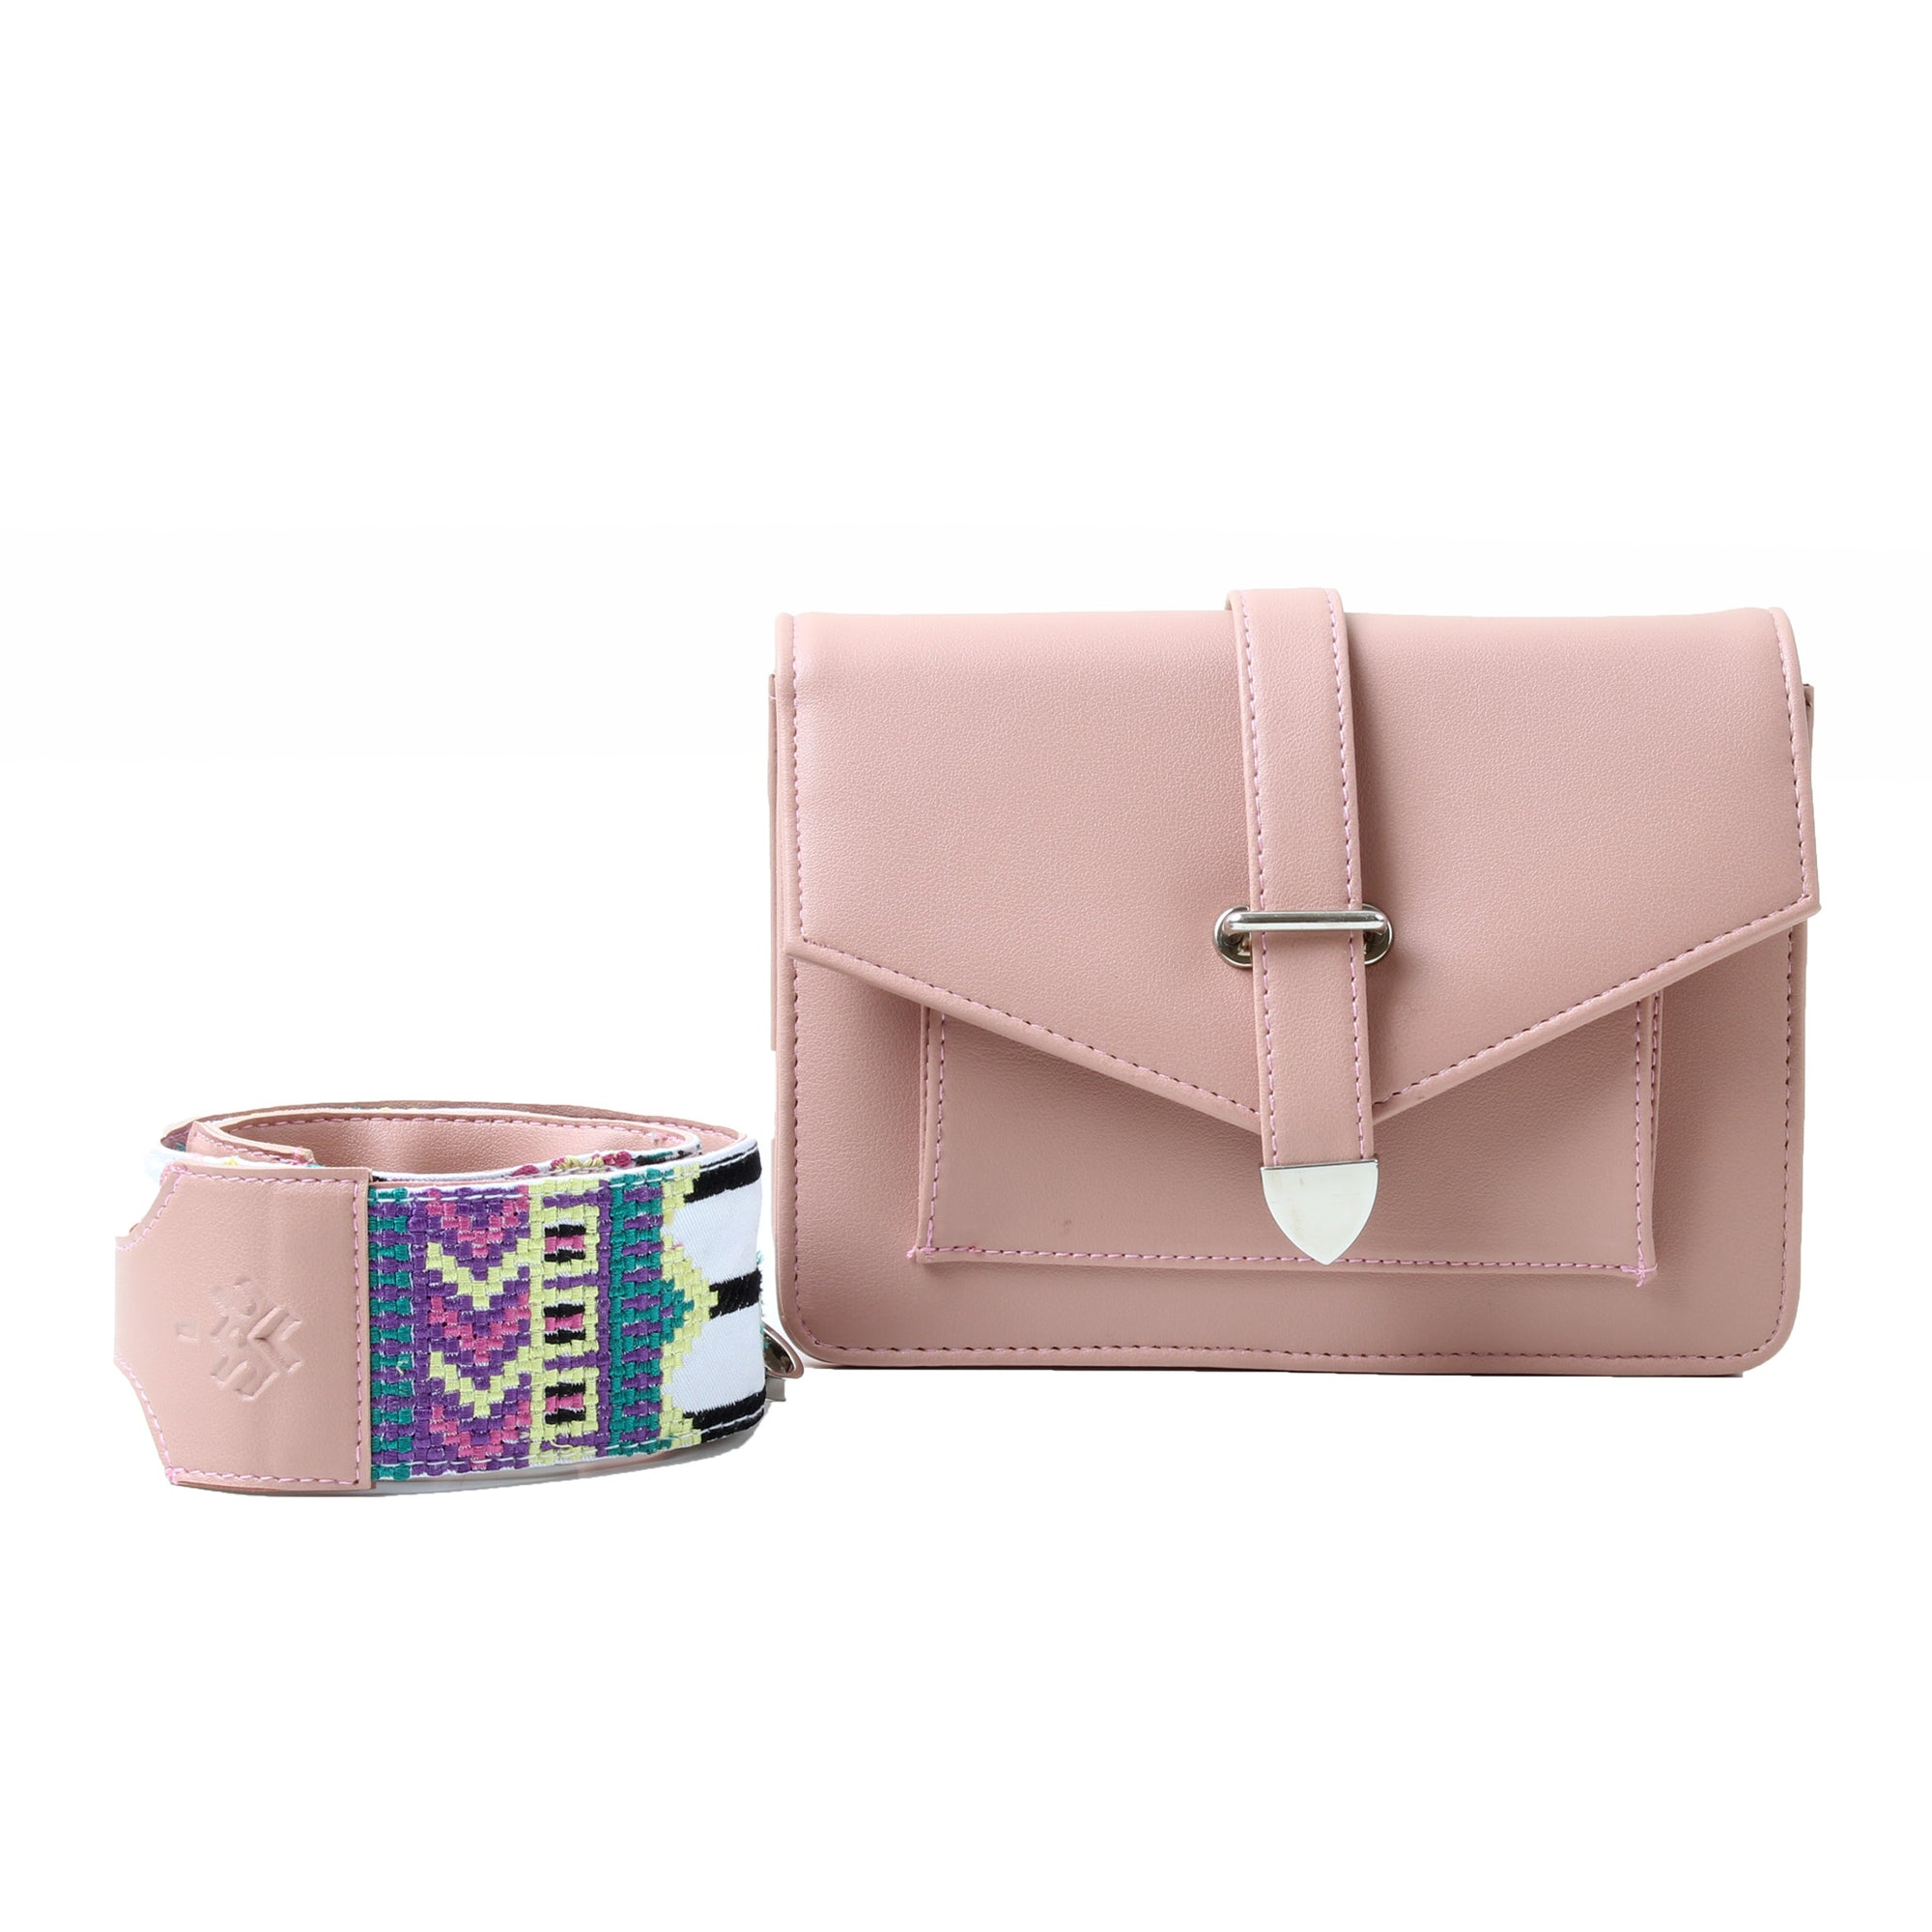 Town Cross-Bag Pink